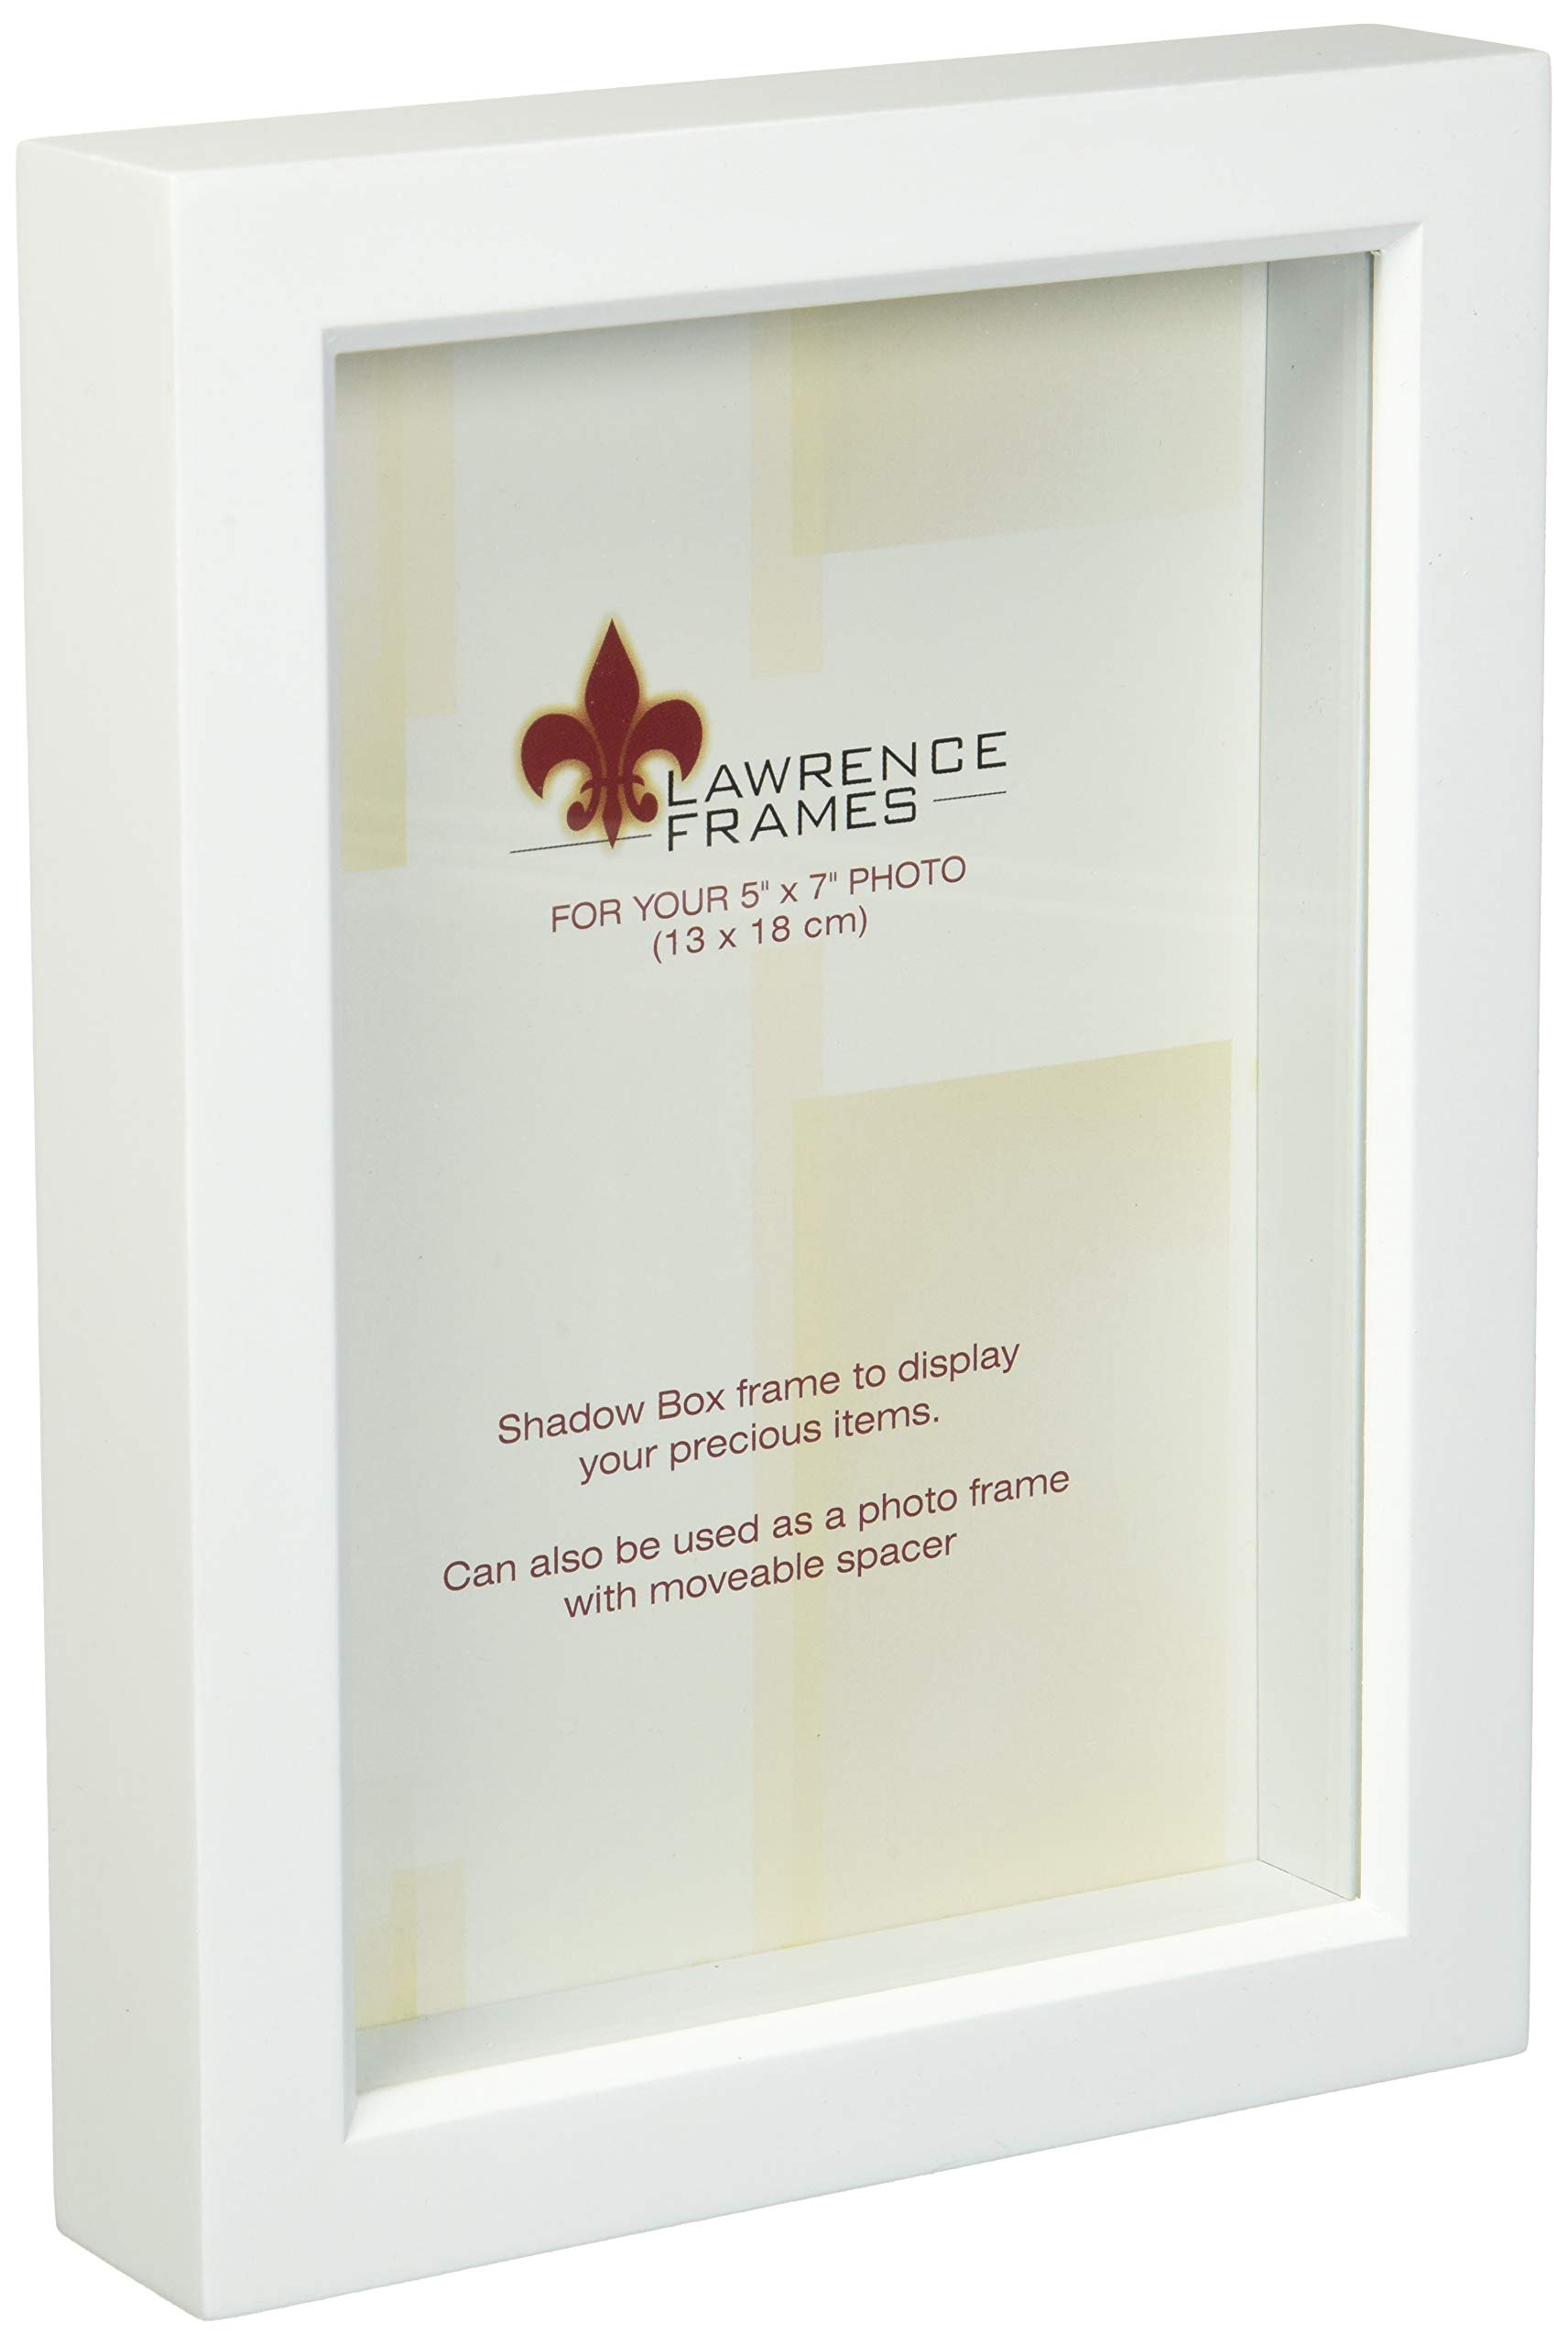 Lawrence Frames 795257 White Wood Treasure Box Shadow Box Picture Frame, 5 by 7-Inch